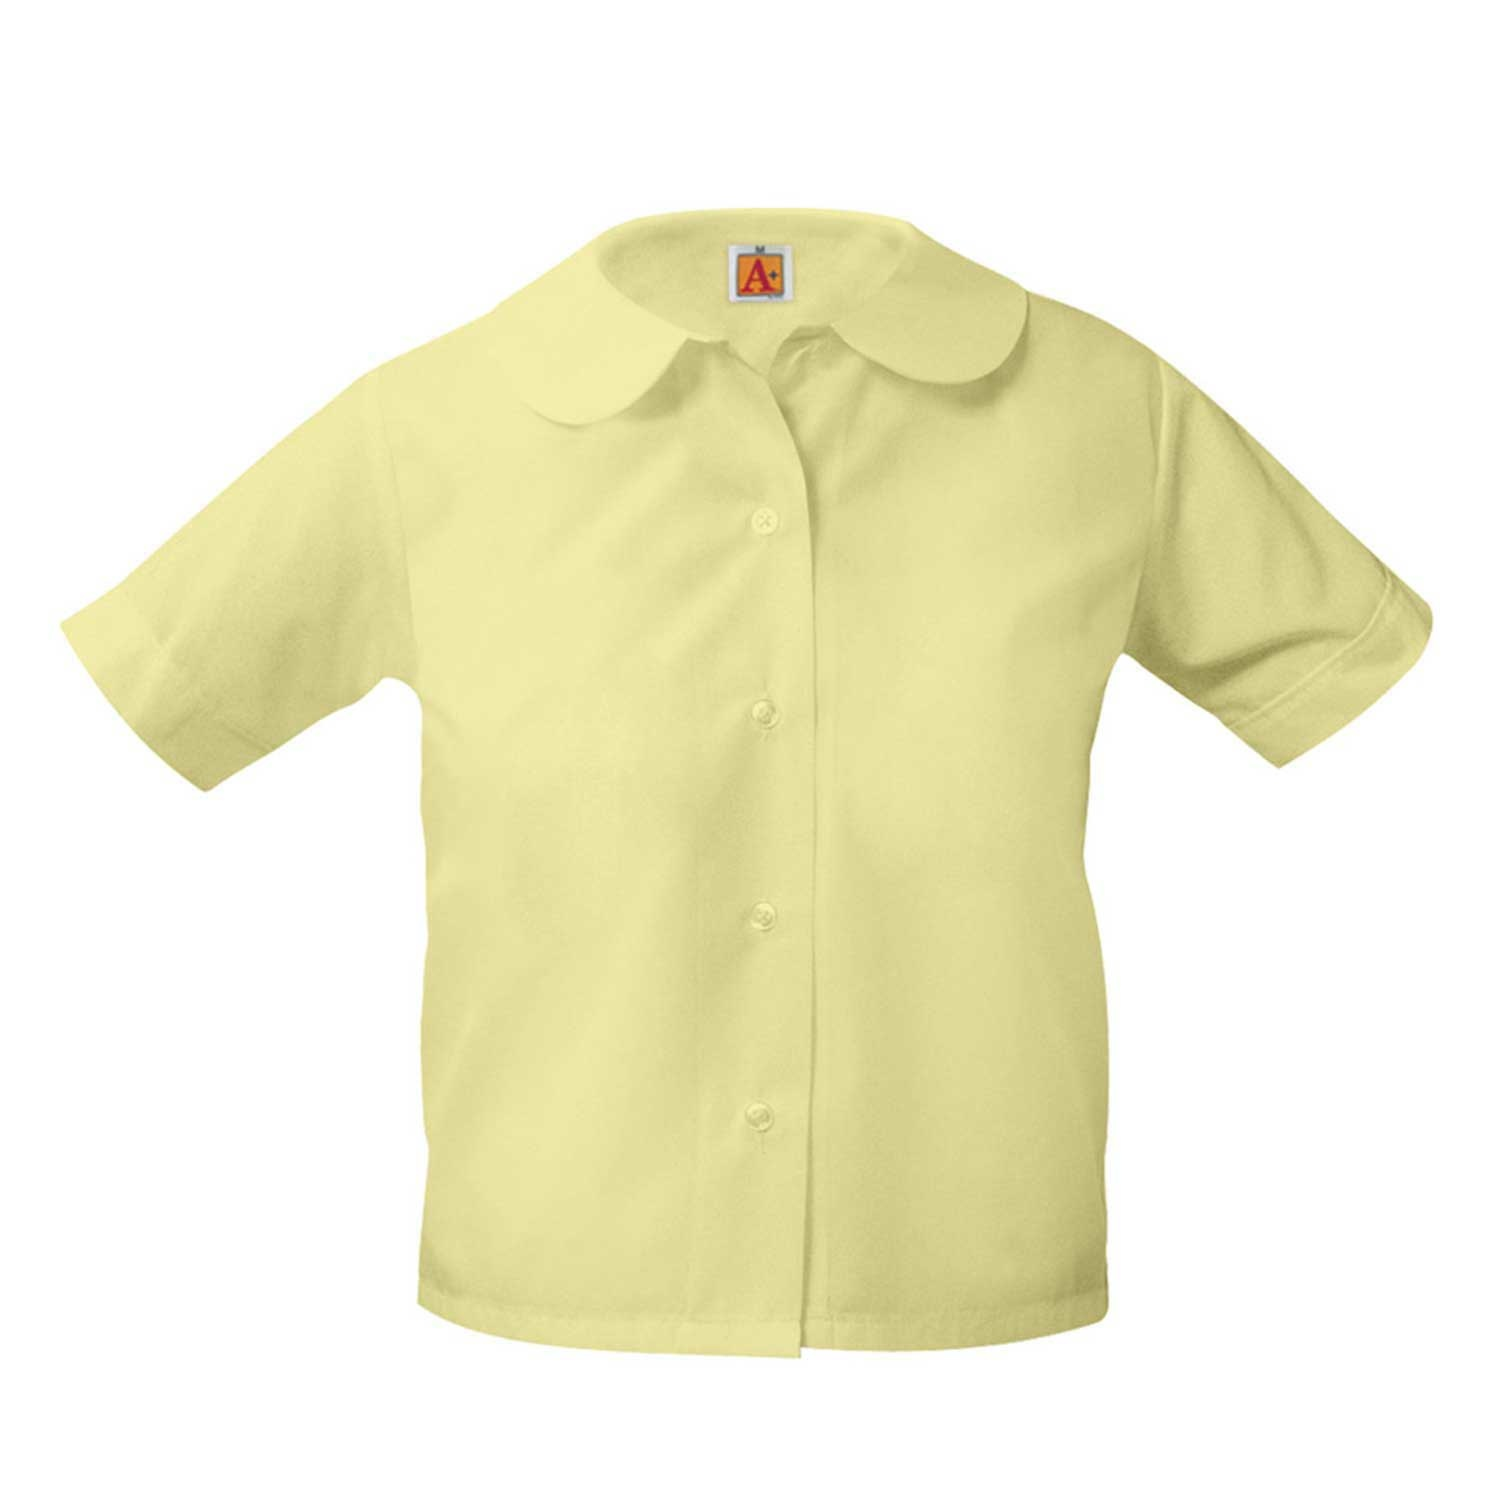 Peter Pan S/S Blouse w/ Pocket (9380) Yellow